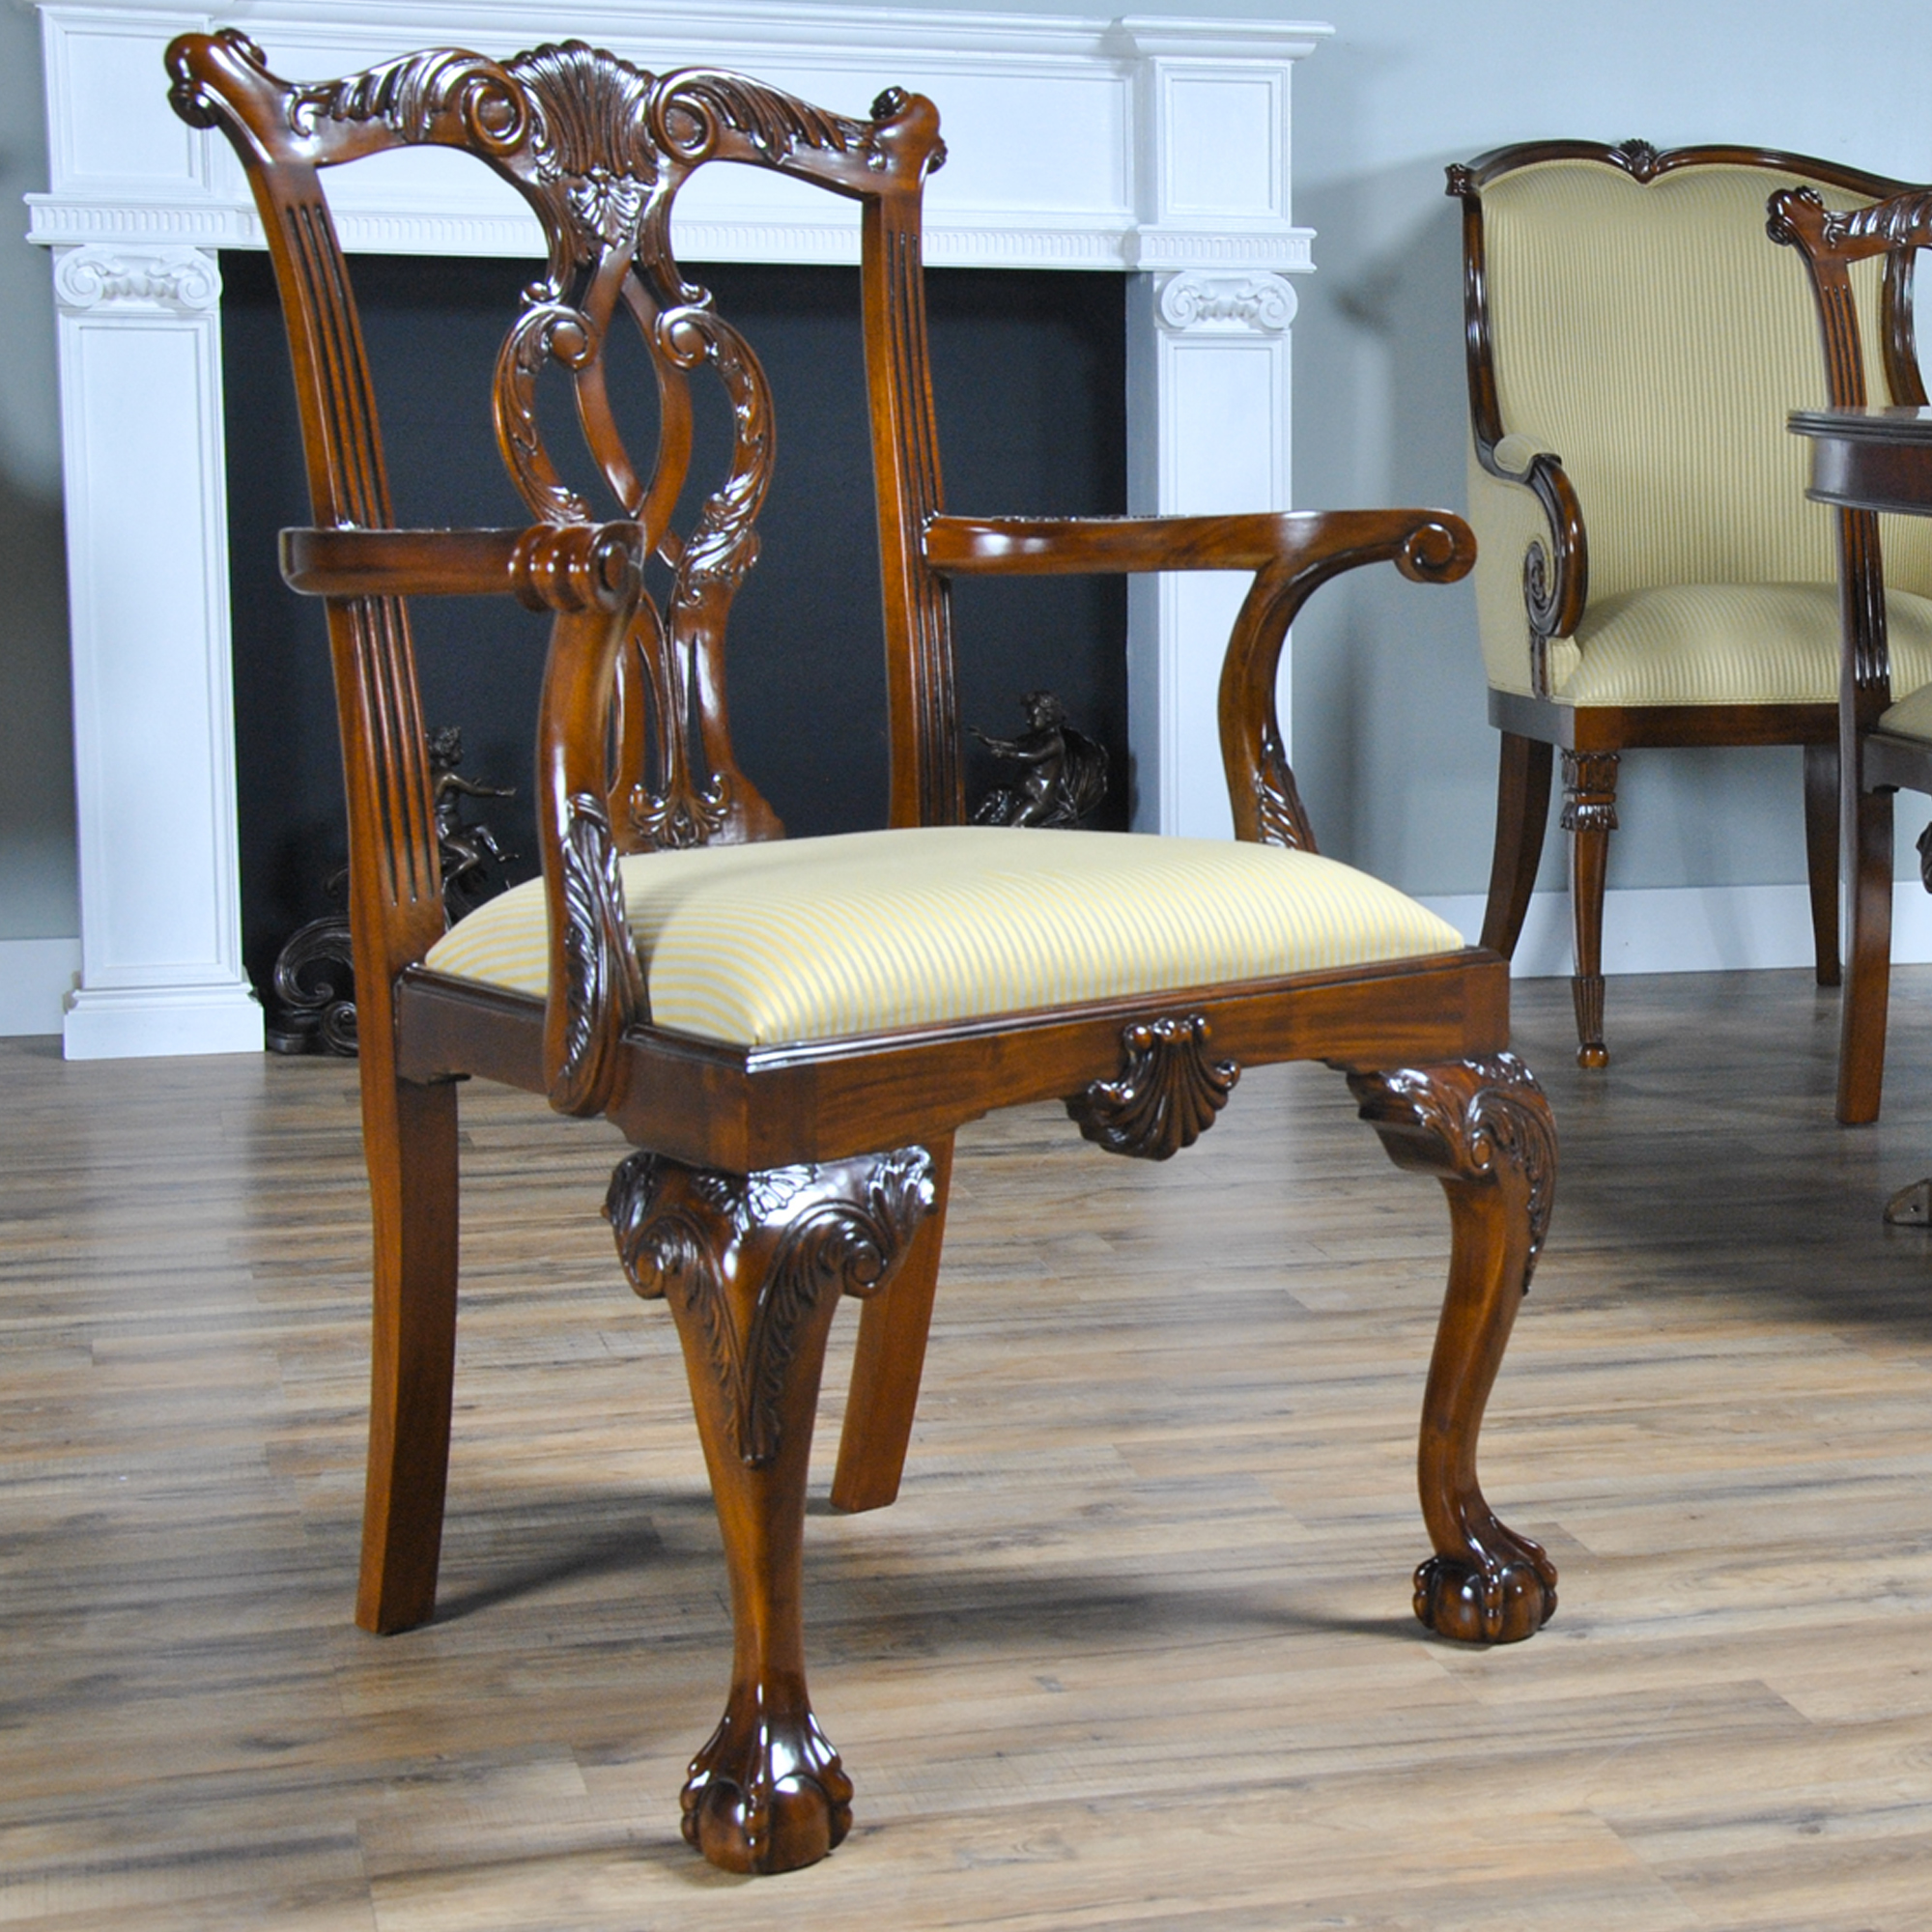 Philadelphia chippendale chairs set of 10 niagara furniture for Z furniture philadelphia